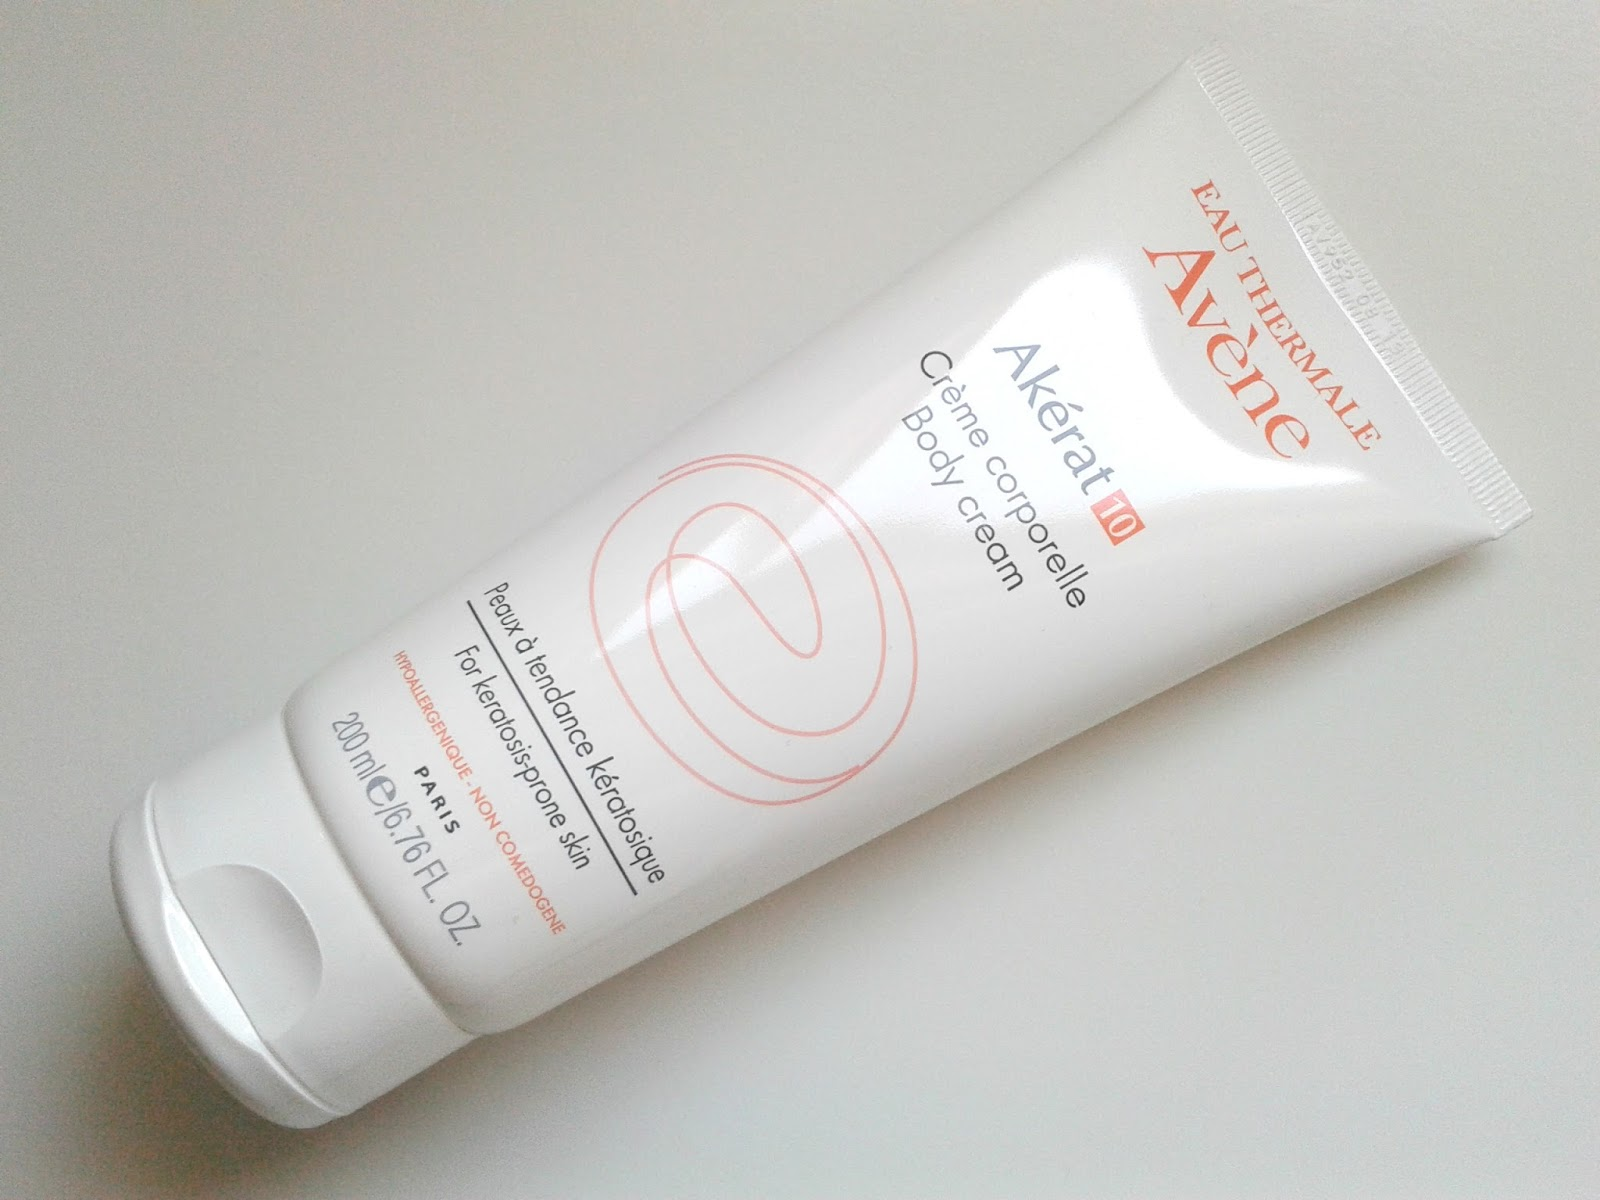 Avene Akerat Body Cream for Dry Skin Review Garden Pharmacy Ellis Tuesday's Summer Sun-days: Body